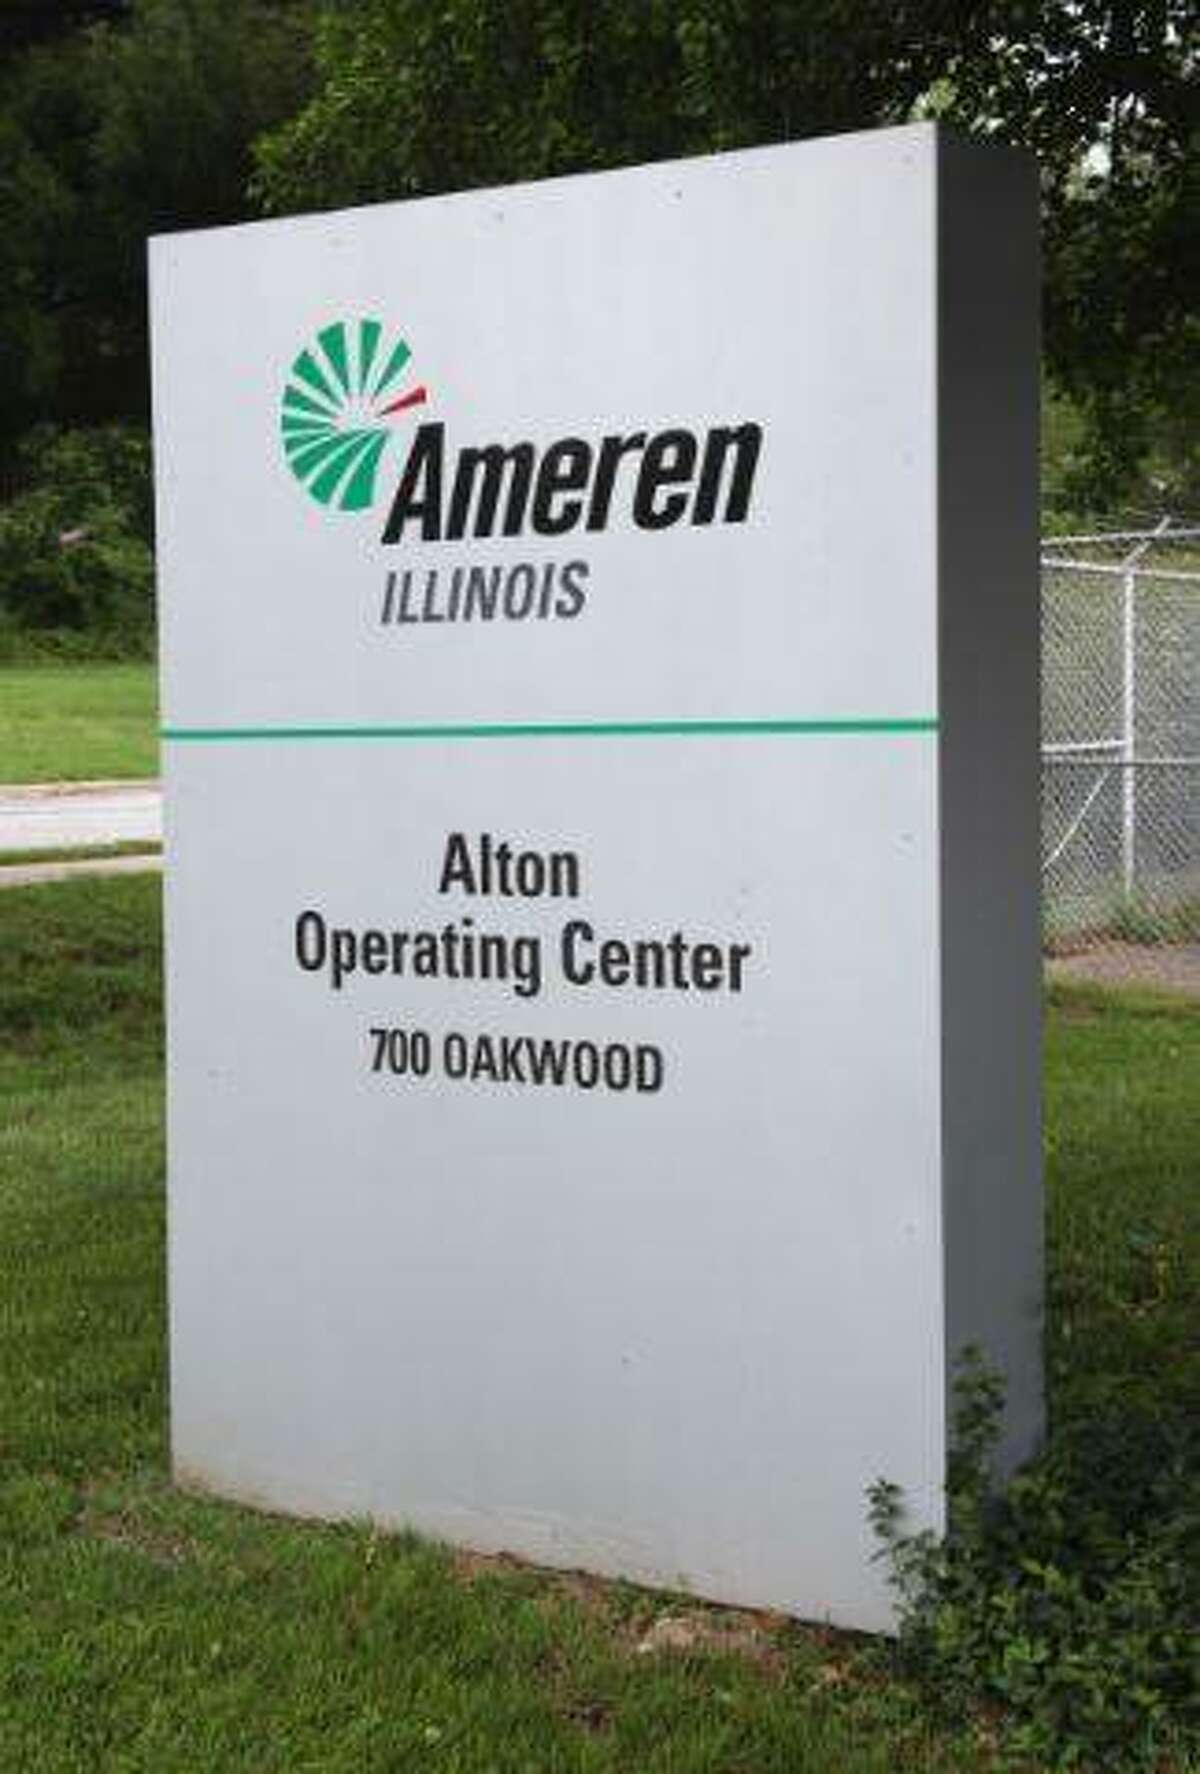 FILE - A photo of the Alton Operating Center for Ameren Illinois.